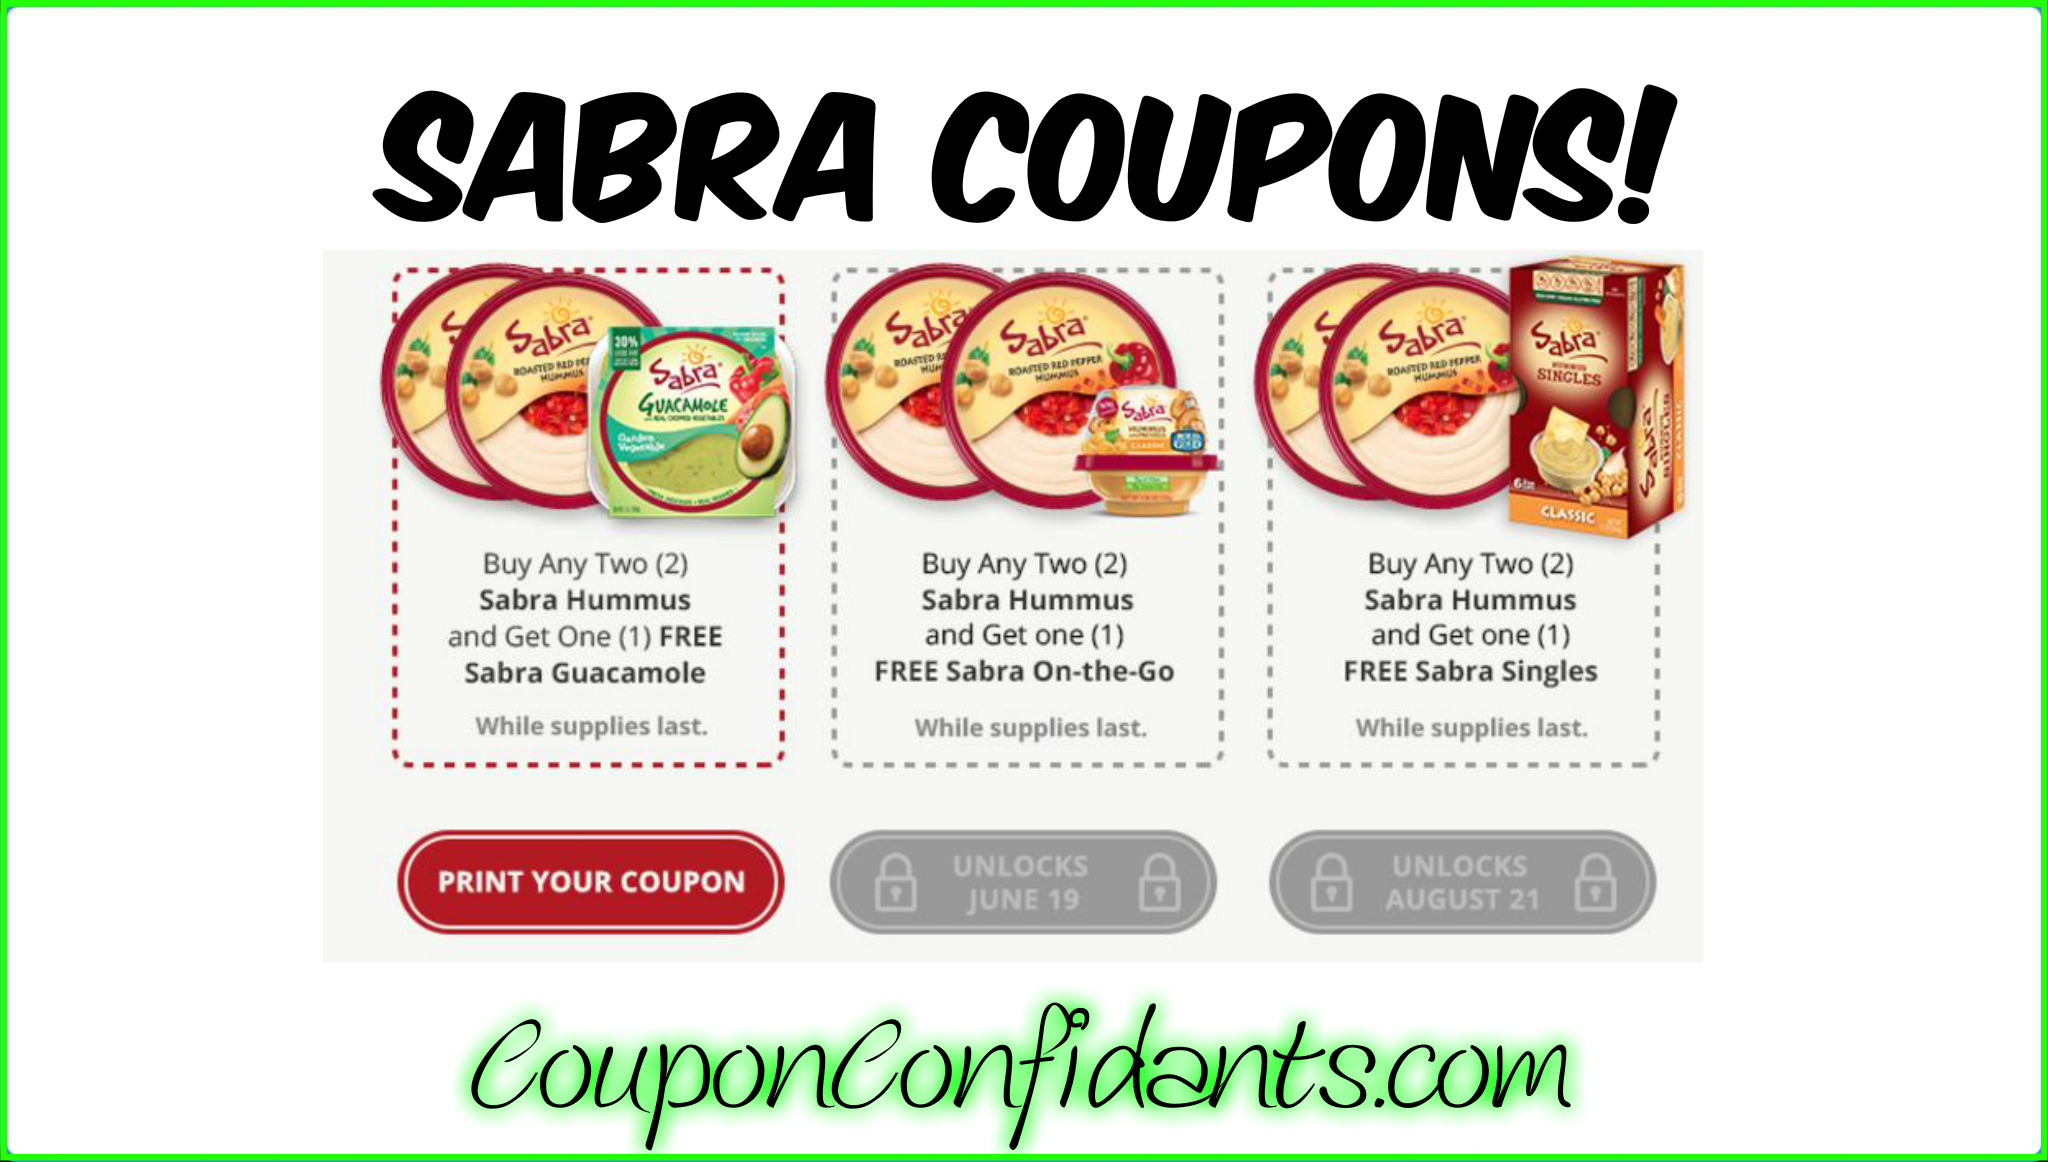 THREE HUGE Sabra Coupons!!! Print the first one NOW!